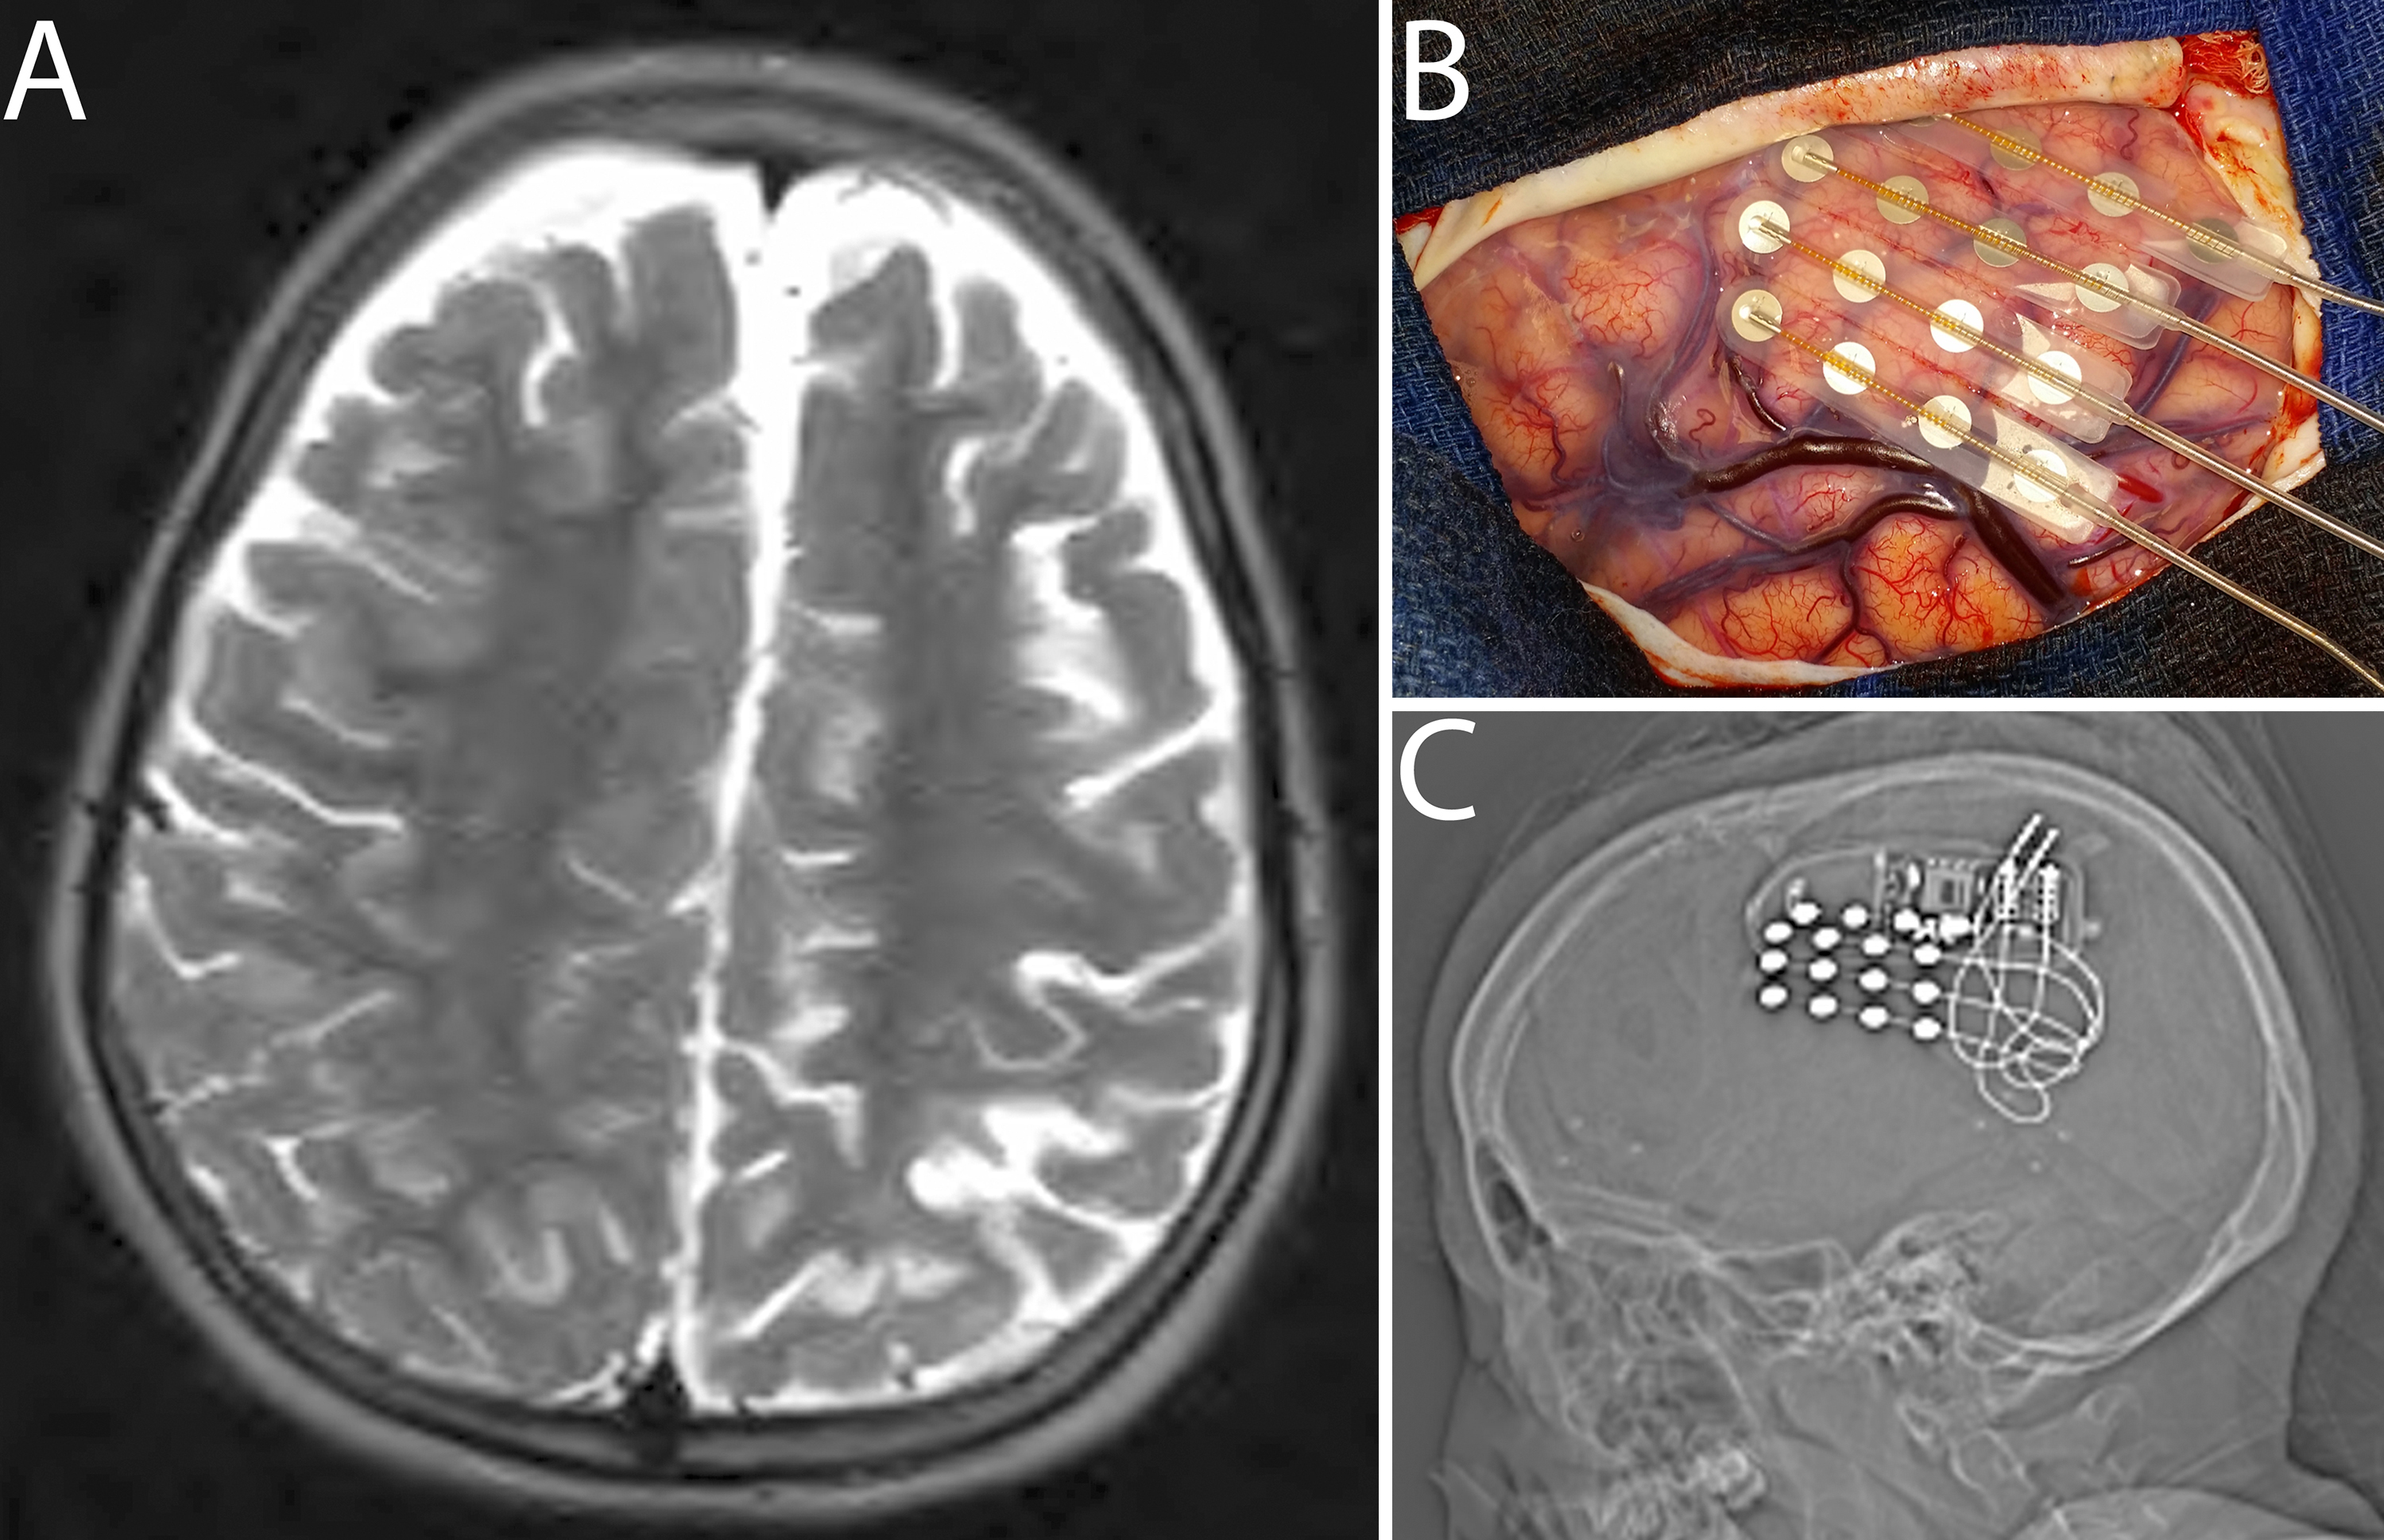 Treatment of medically refractory seizures with responsive